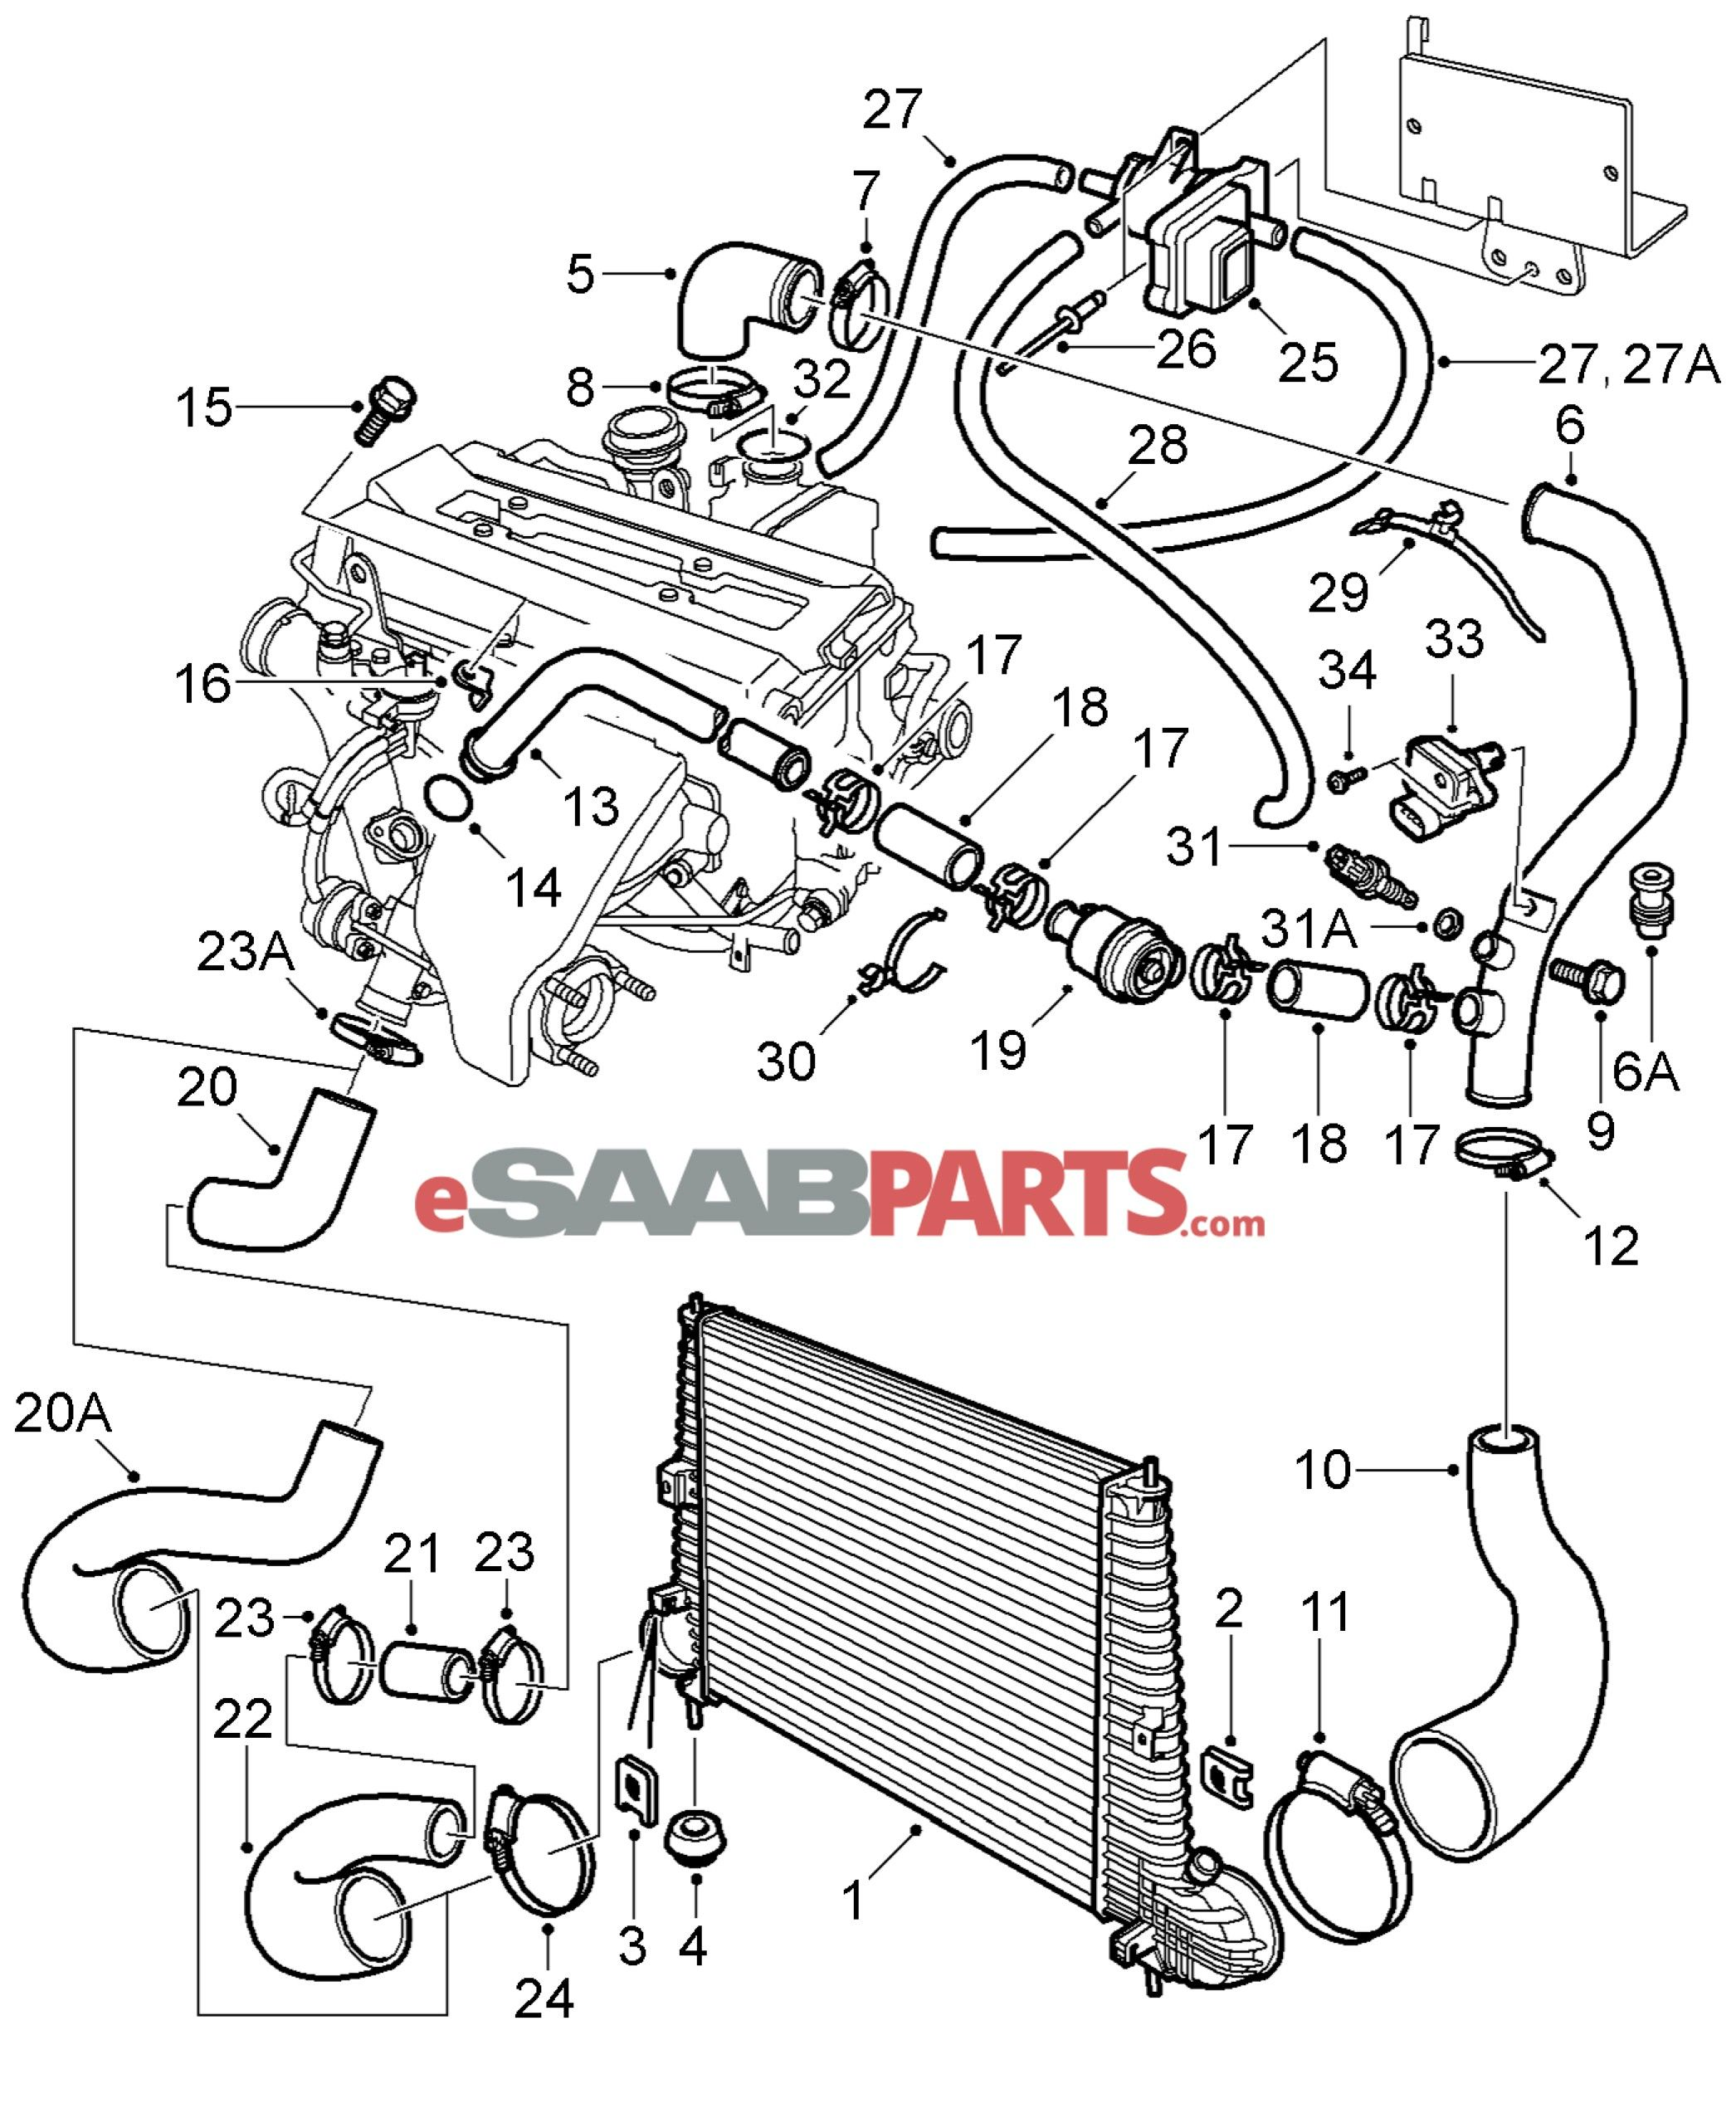 2005 saab 9 5 engine part diagram basic guide wiring diagram u2022 rh hydrasystemsllc com 99 saab 9 5 specs 99 saab 9 5 specs [ 2092 x 2558 Pixel ]